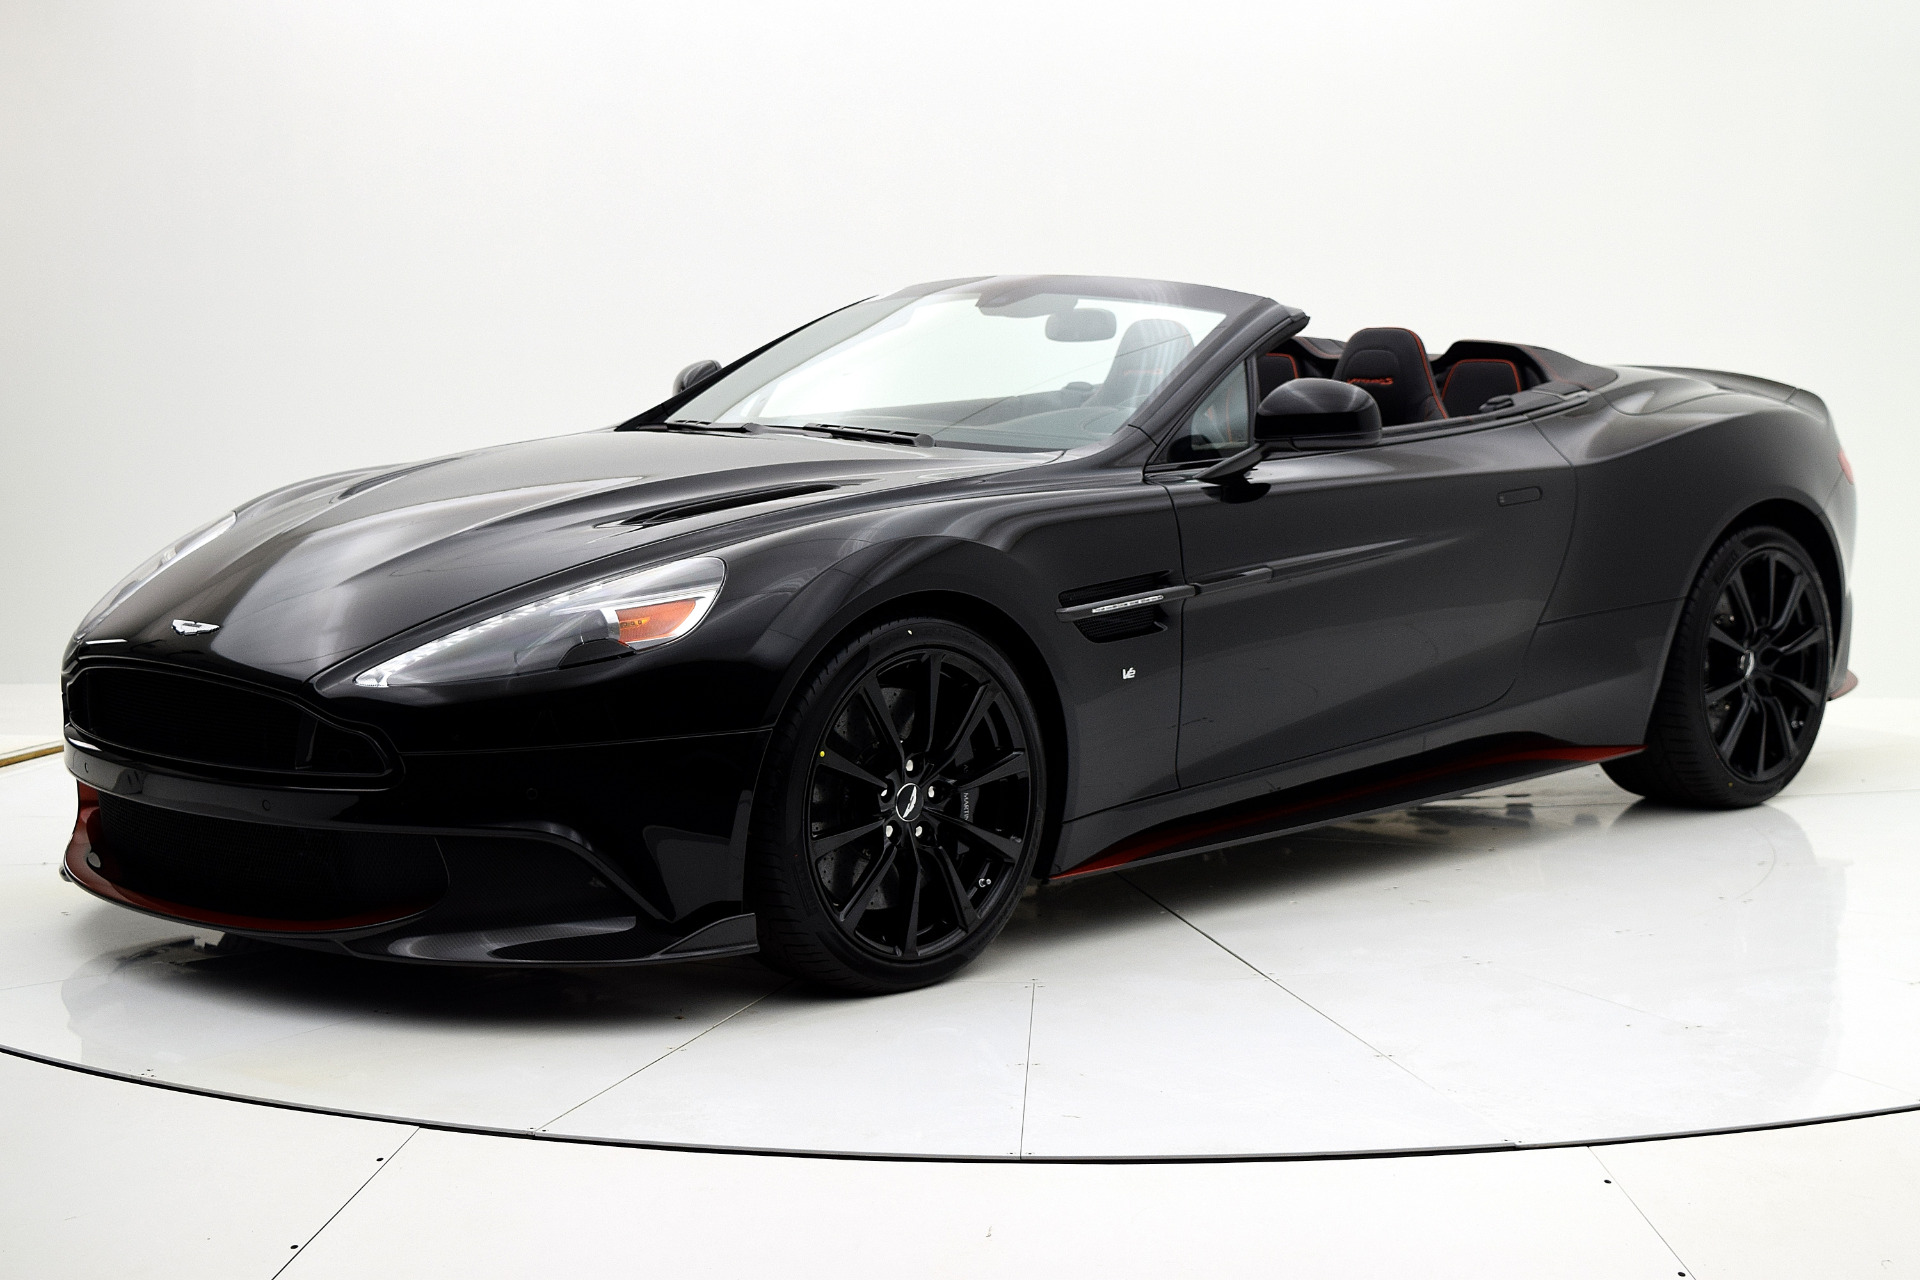 Aston Martin Vanquish 2018 Jet Black For Sale $352204 Stock Number 18A109